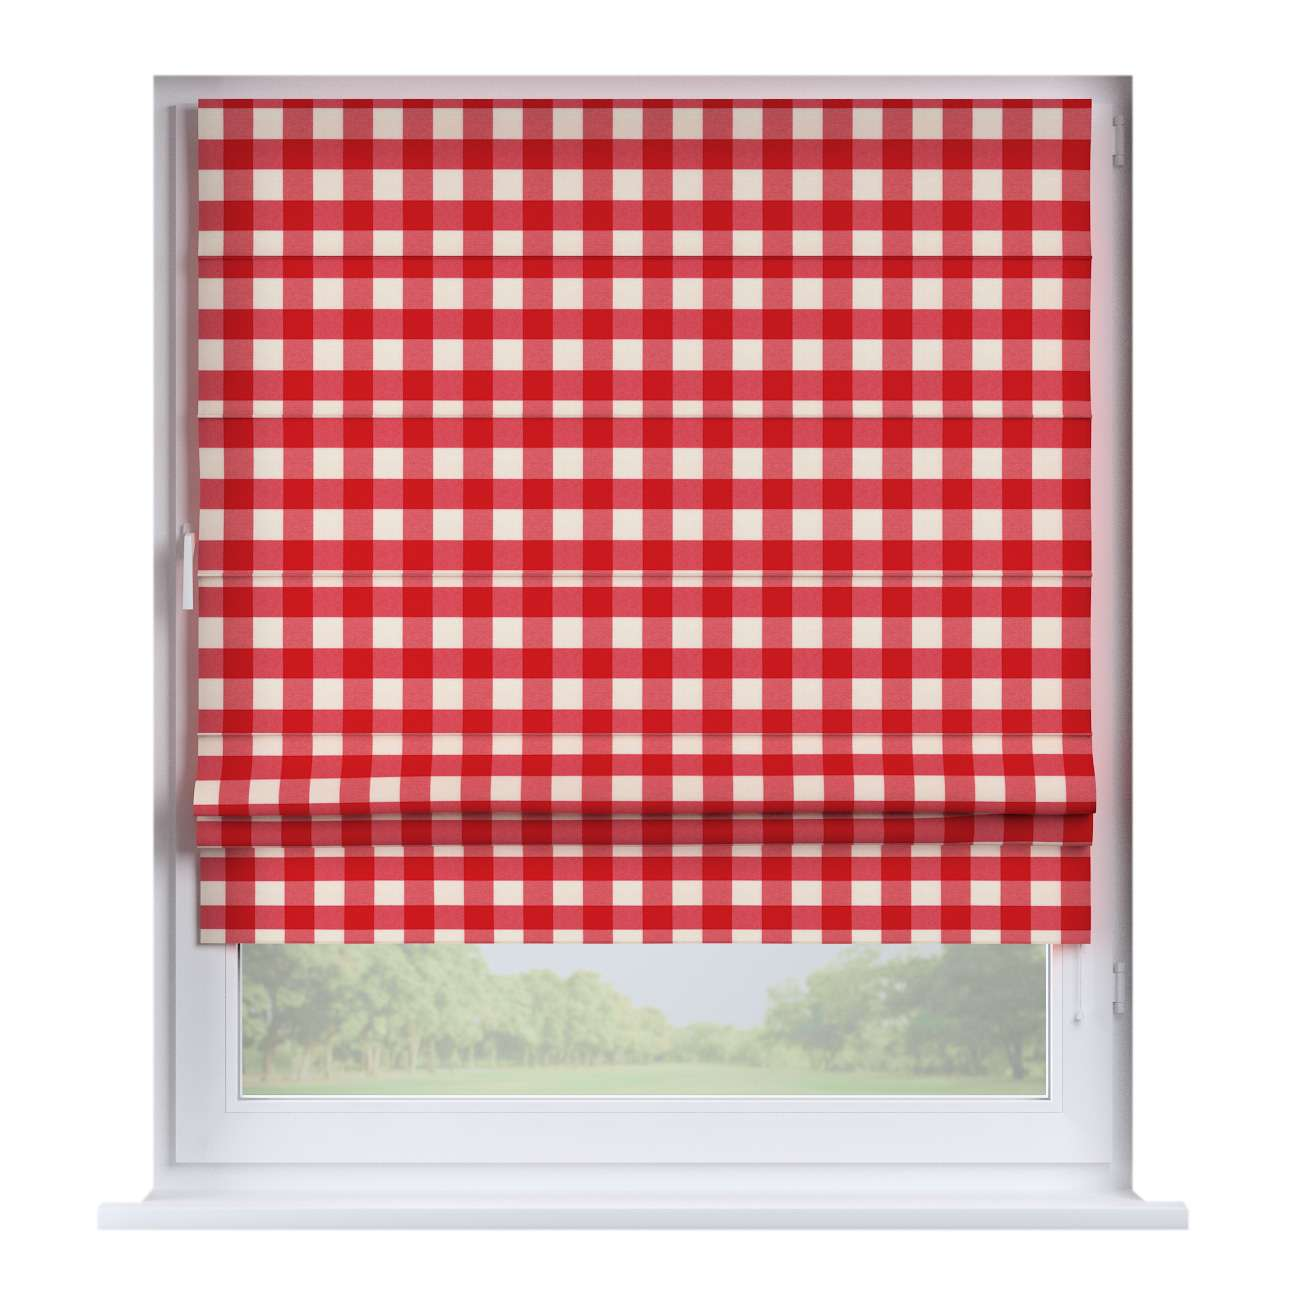 Padva roman blind  80 x 170 cm (31.5 x 67 inch) in collection Quadro, fabric: 136-18